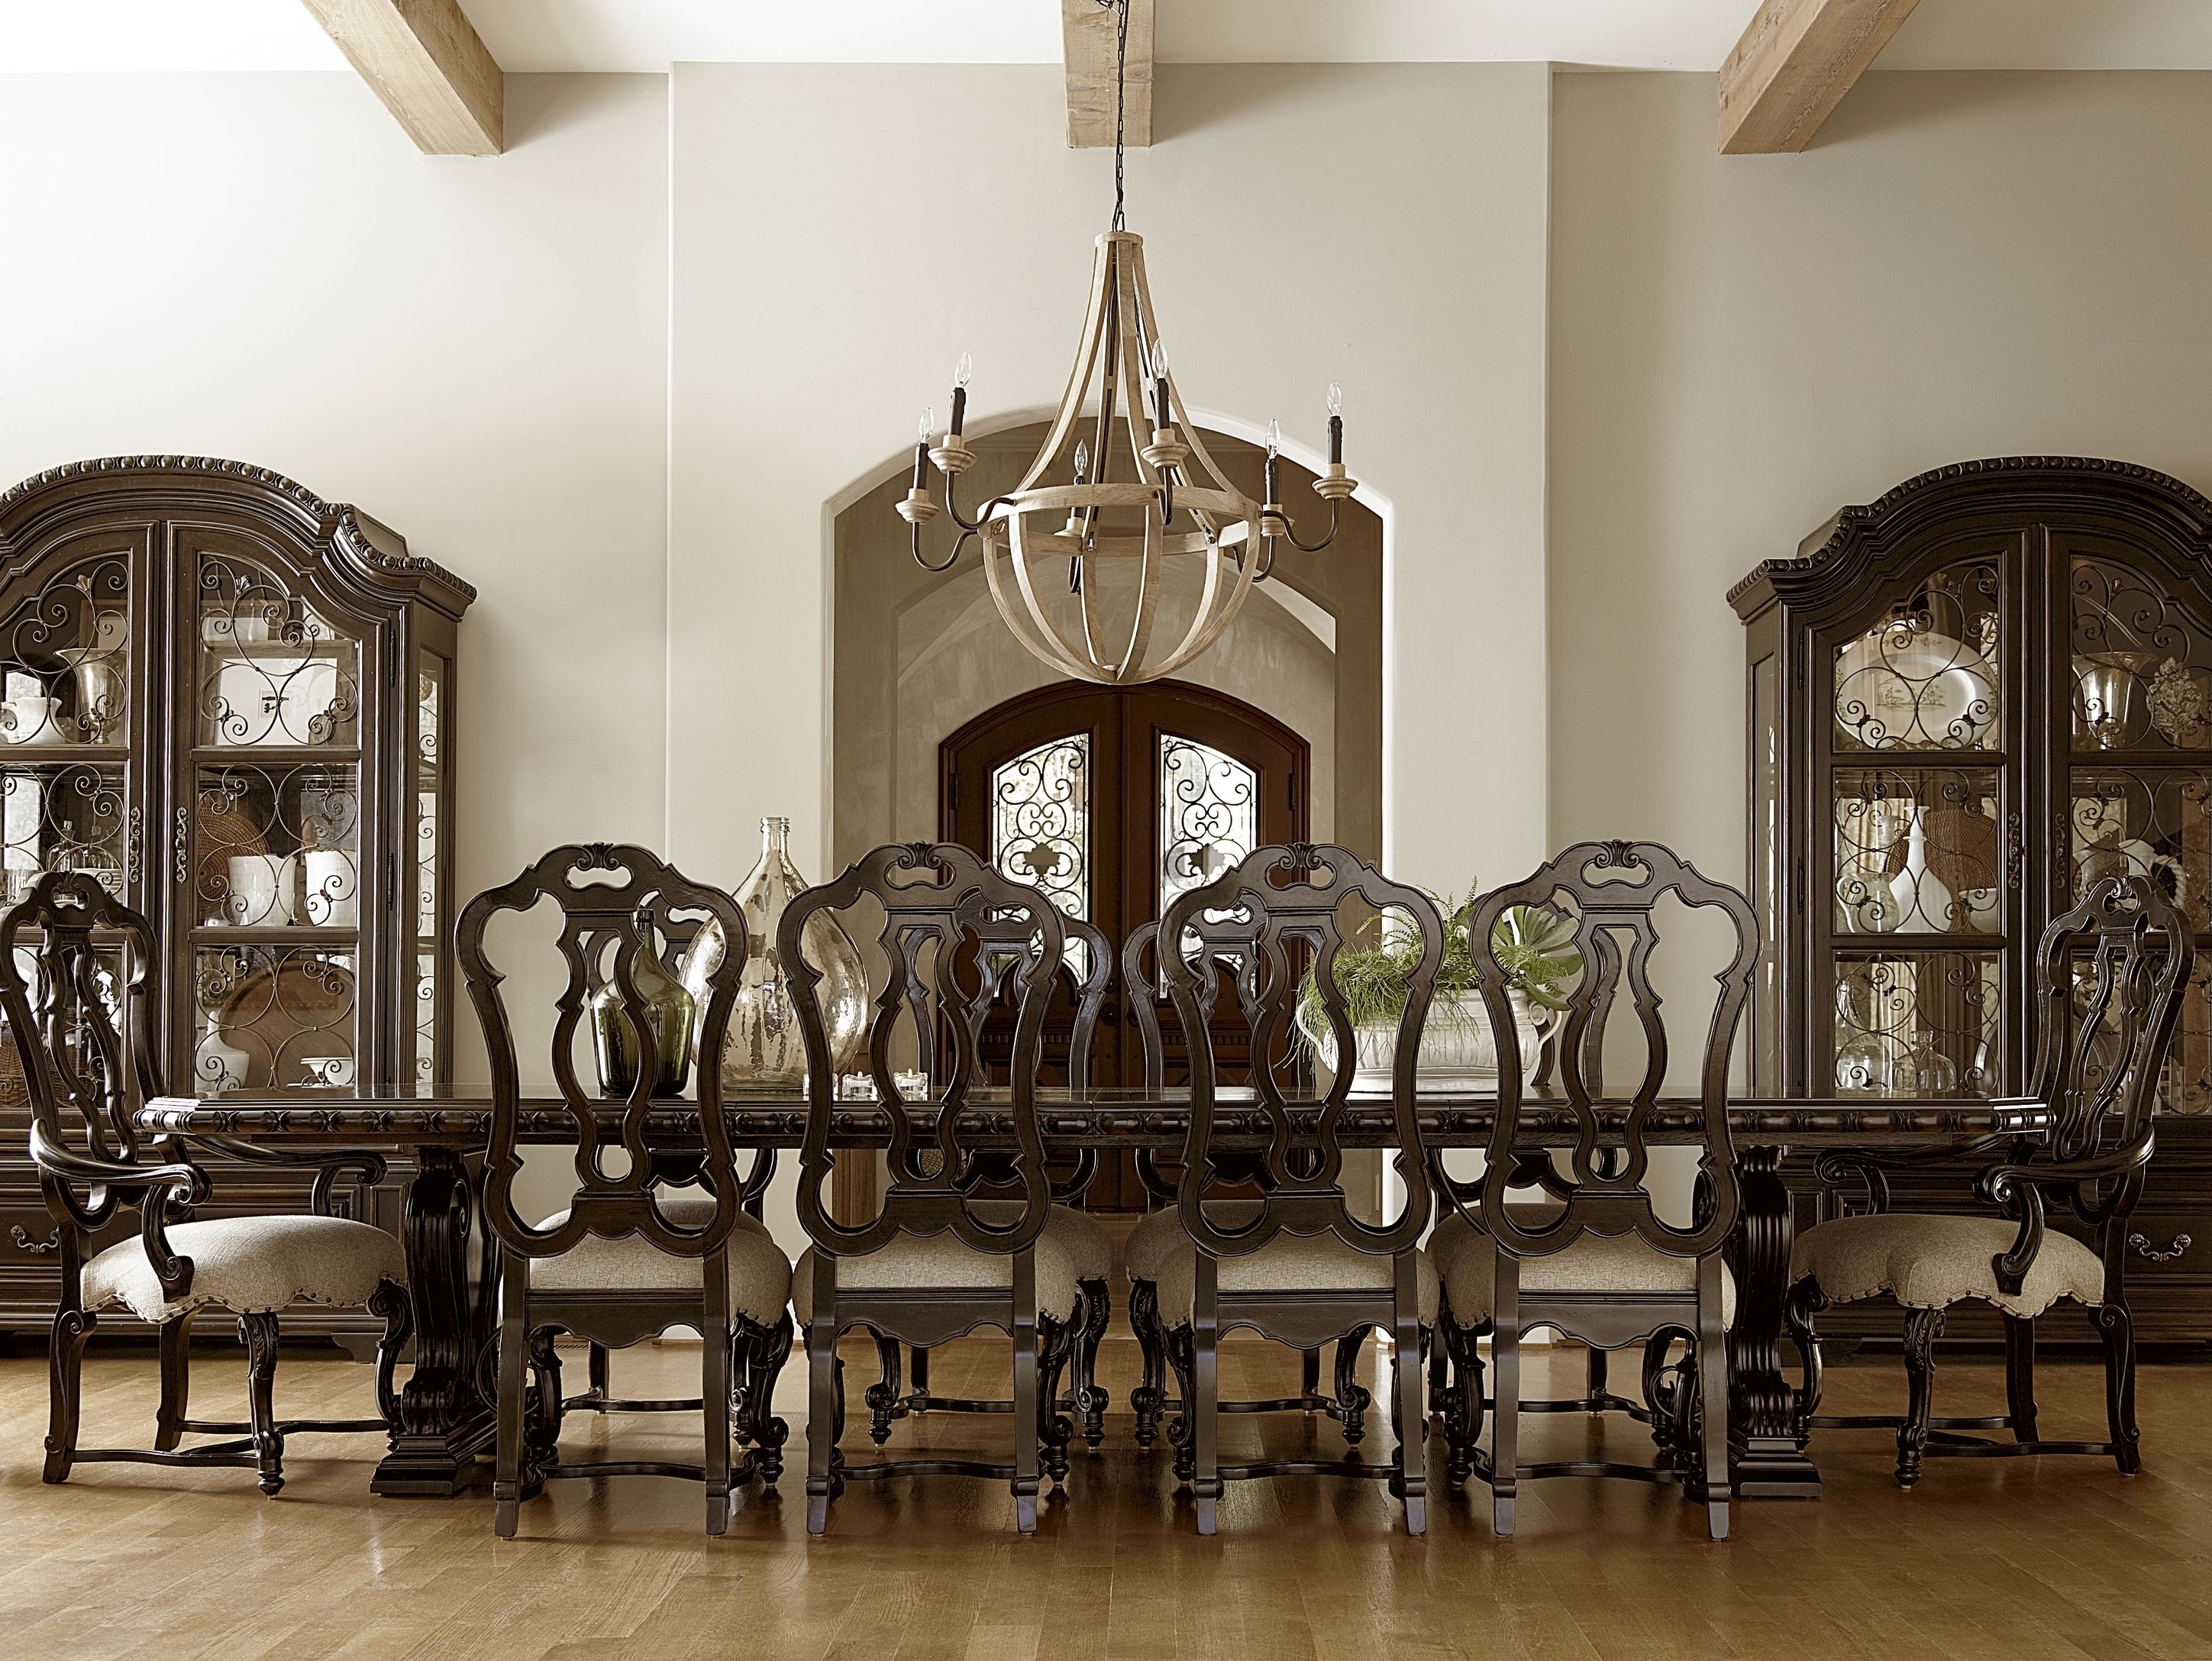 Buy Castella Dining Room Setuniversal From Www.mmfurniture. Intended For Well Known Universal Dining Tables (Gallery 22 of 25)